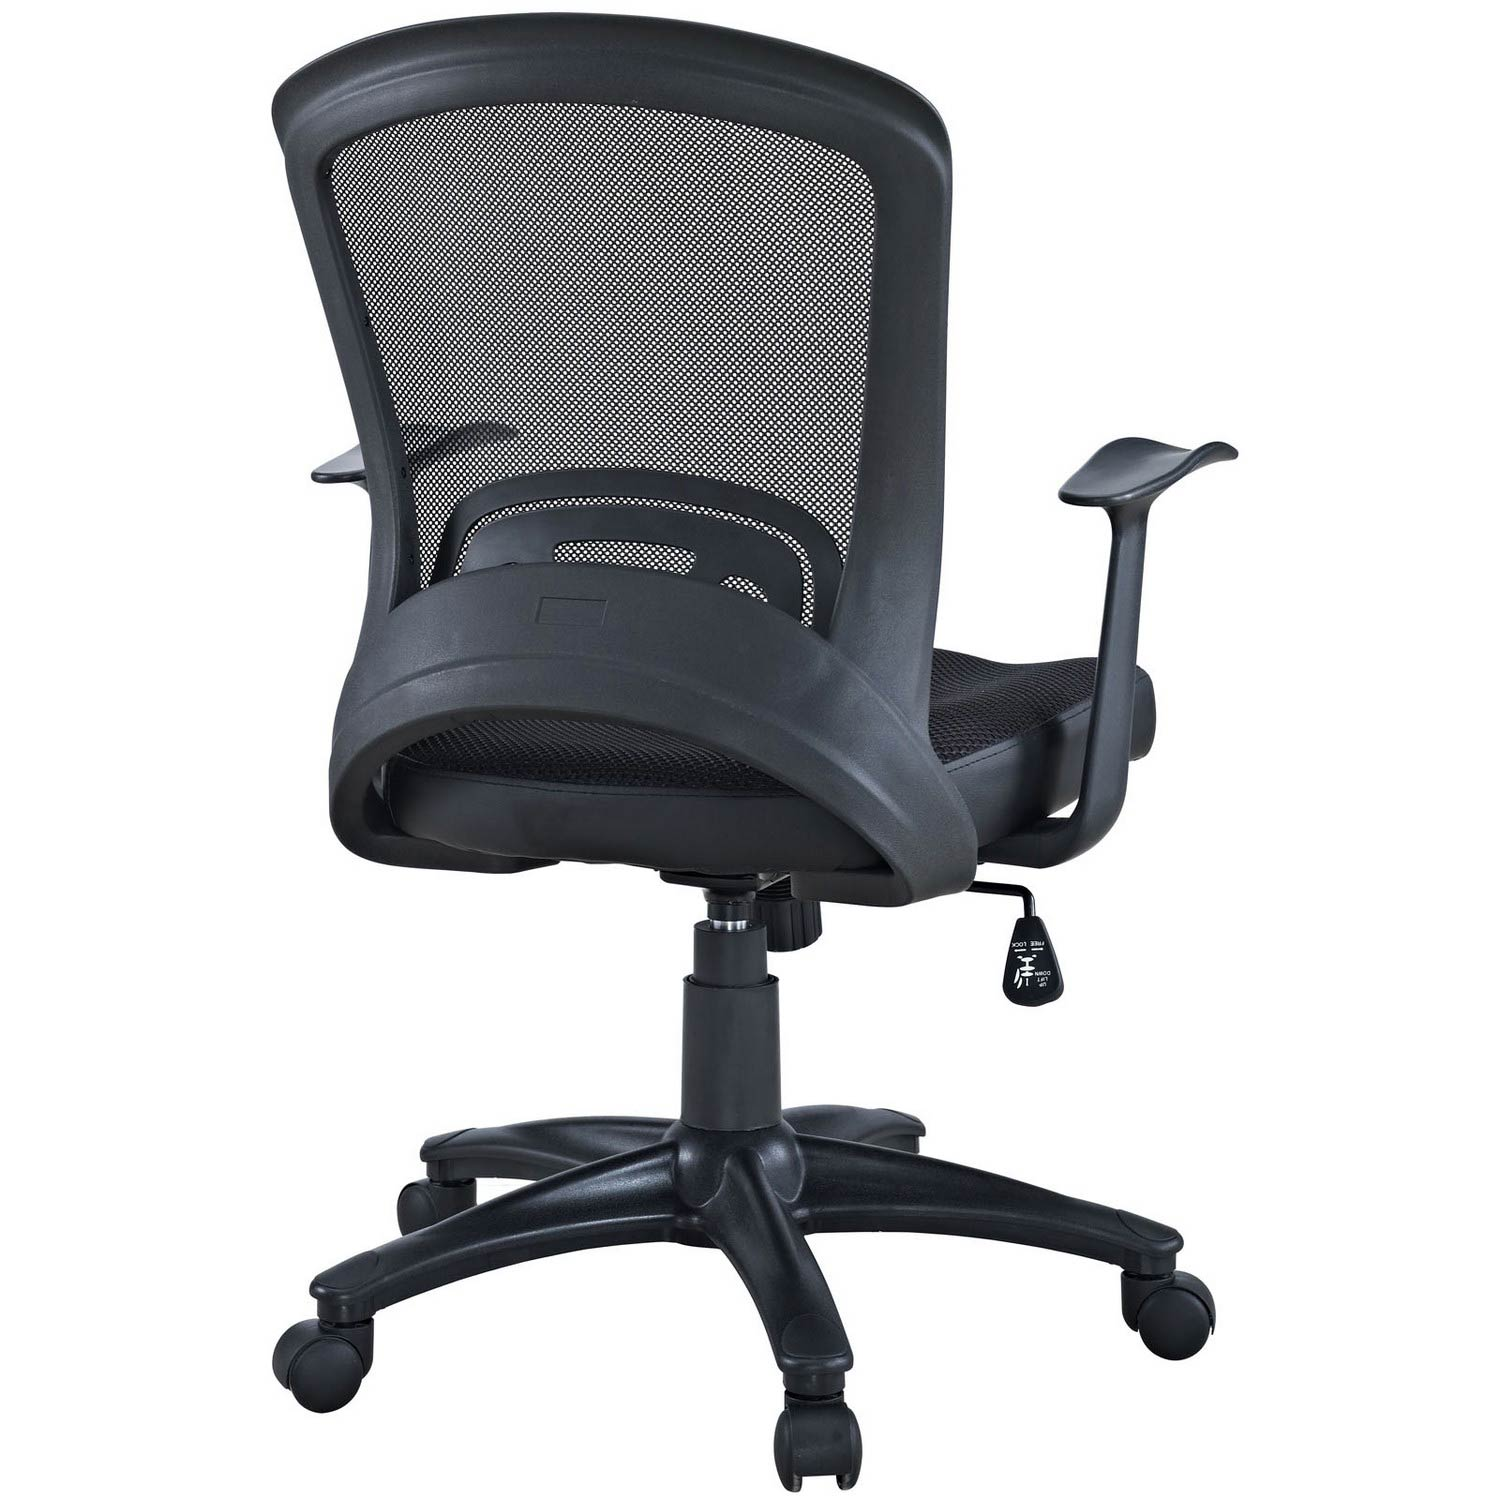 back support for office chair malaysia adirondack photo frame favors modway pulse mesh black mw eei 758 blk at